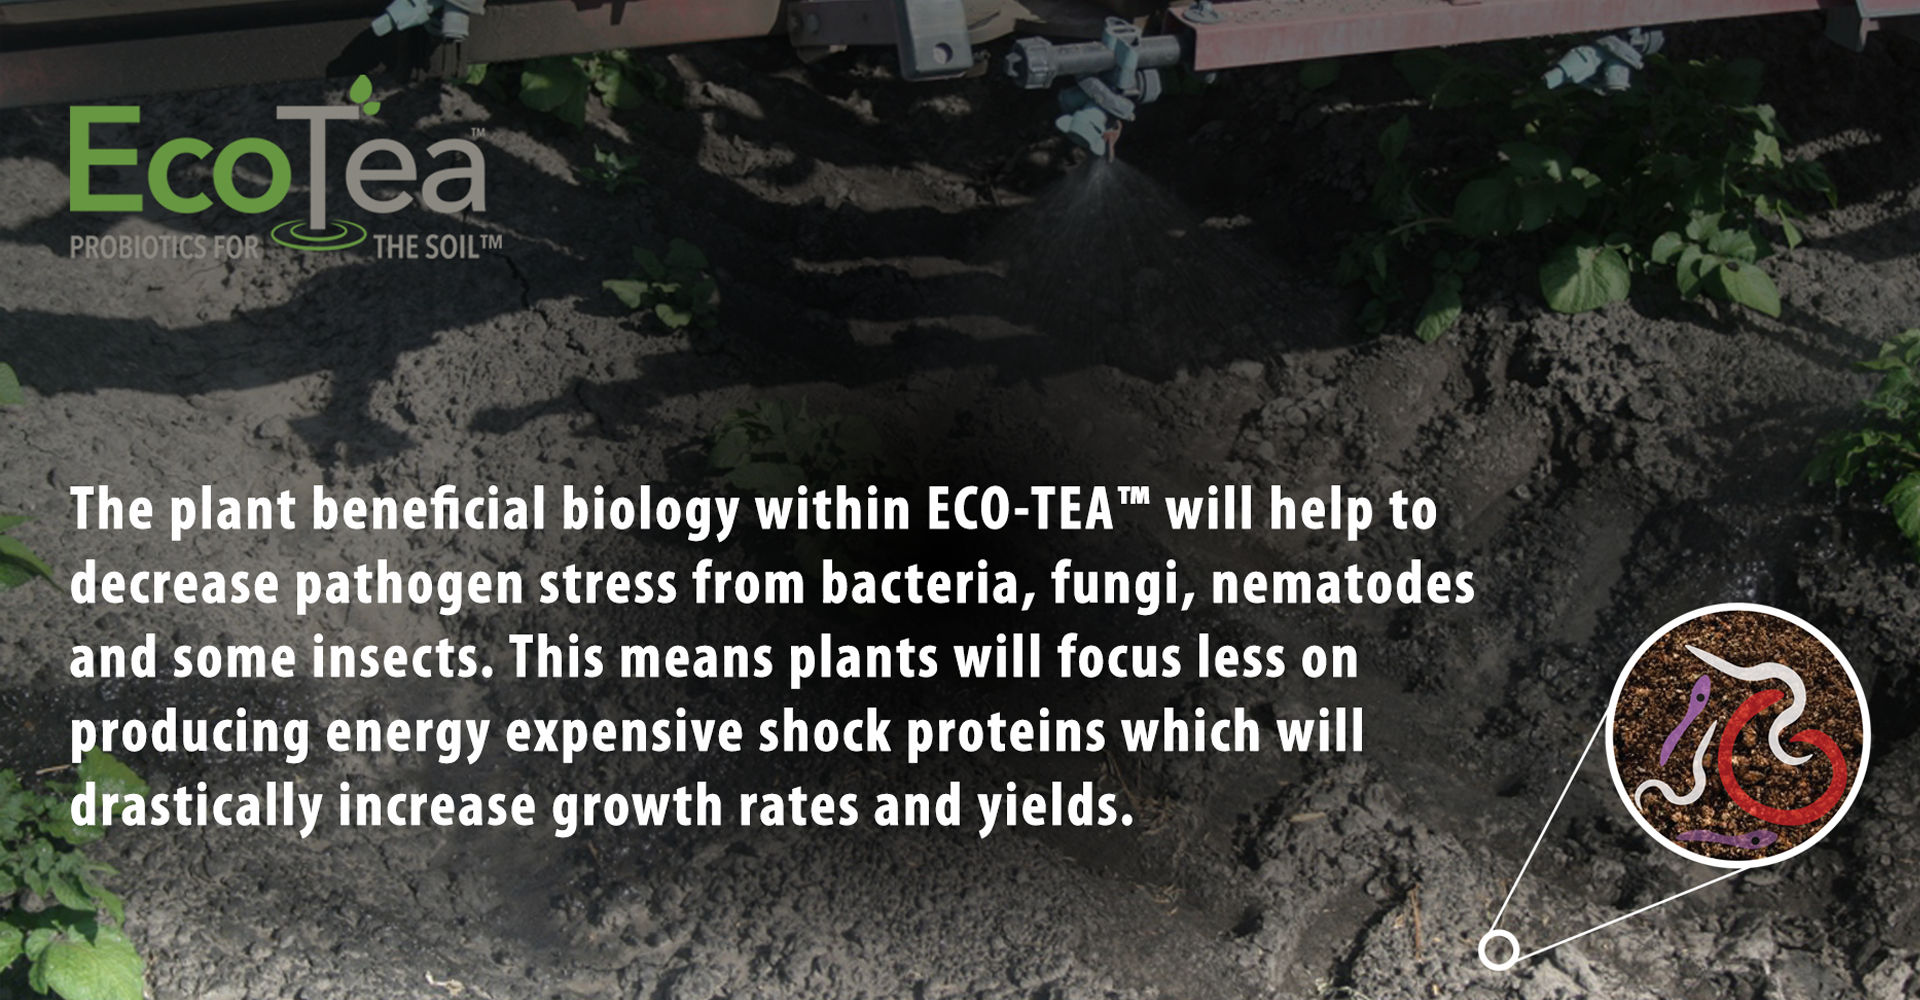 Eco-Tea will increase biomass and root function